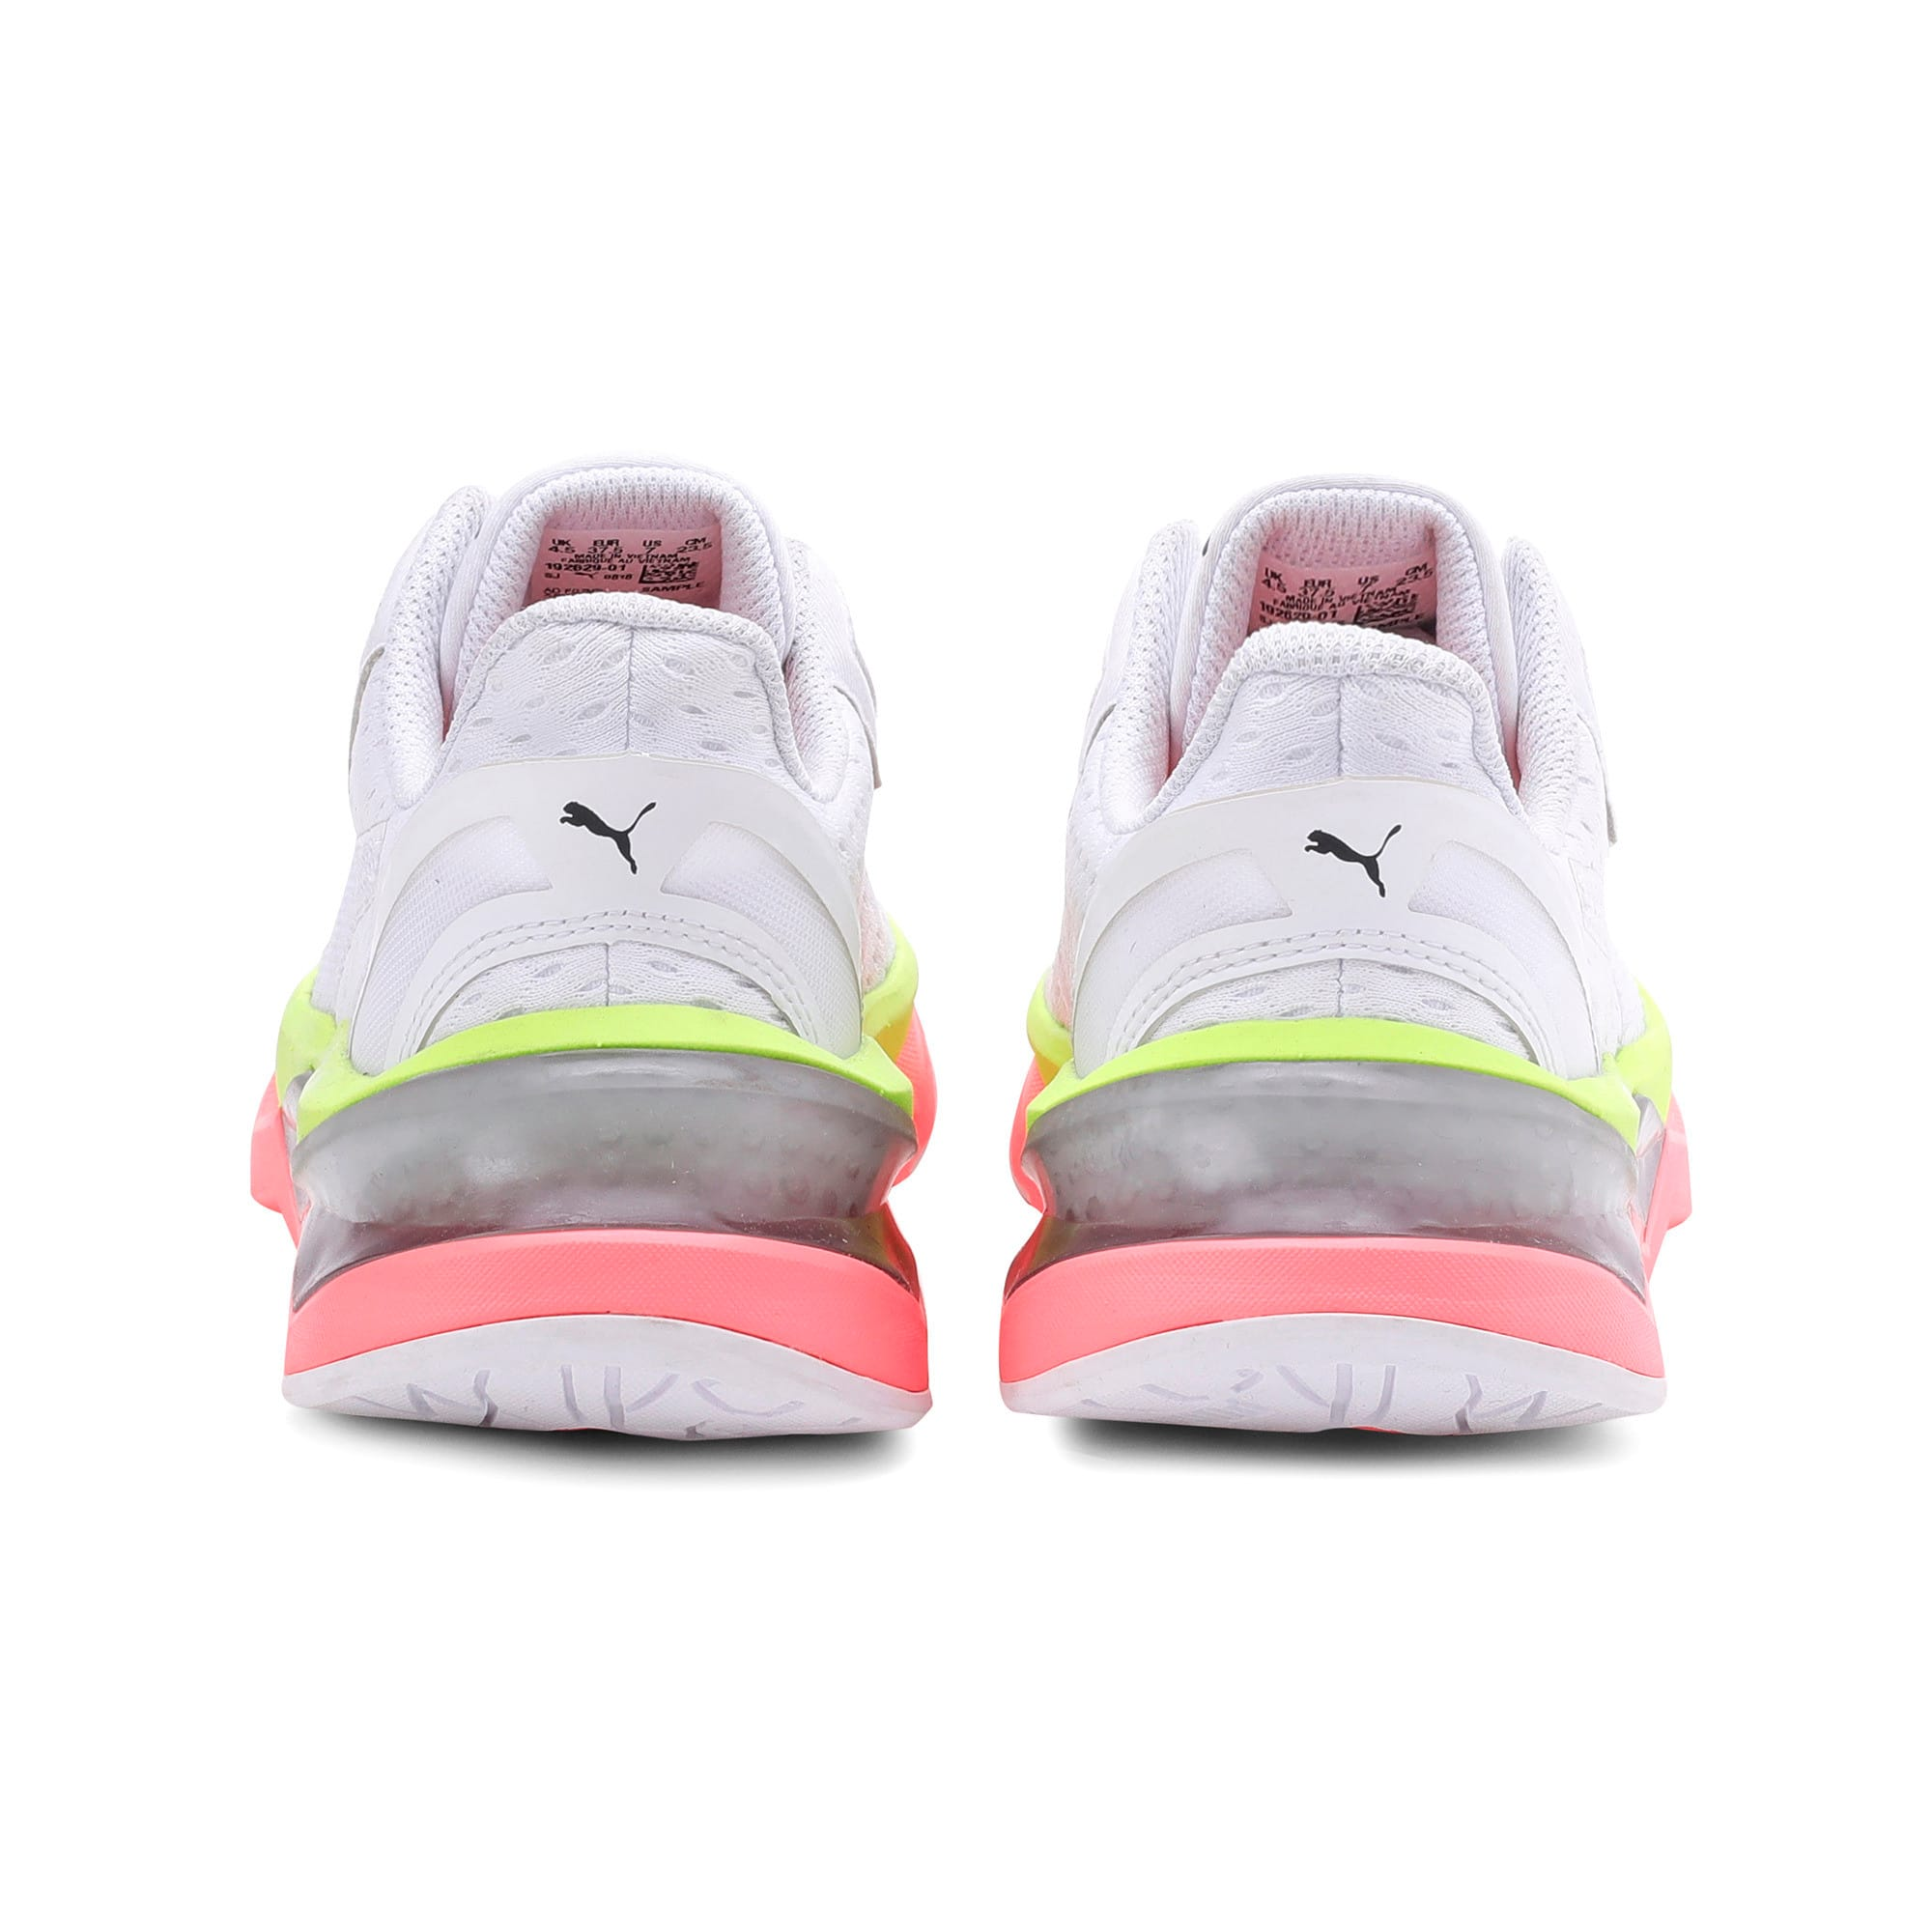 Thumbnail 5 of LQDCell Shatter XT Women's Training Shoes, Puma White-Pink Alert, medium-IND